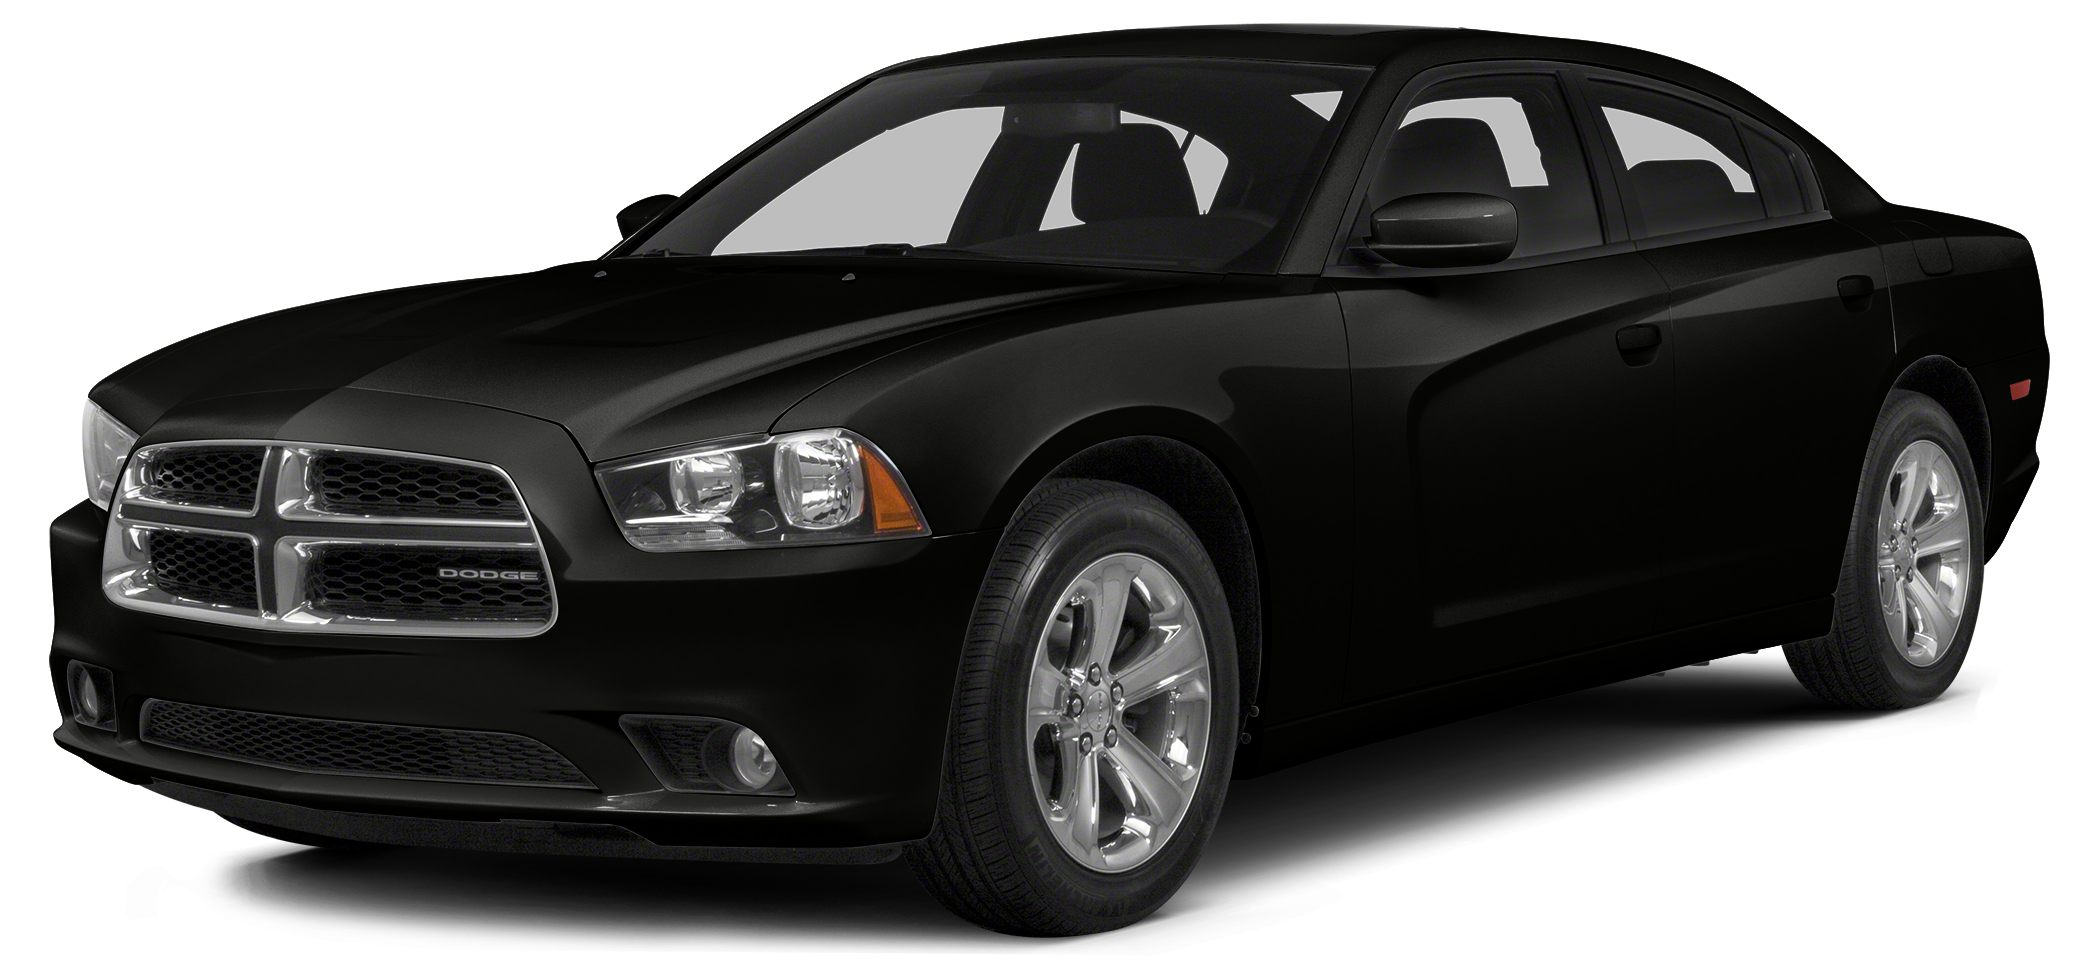 2014 Dodge Charger RT WARRANTY FOREVER included at NO EXTRA COST See our Excellent Reviews on Fa